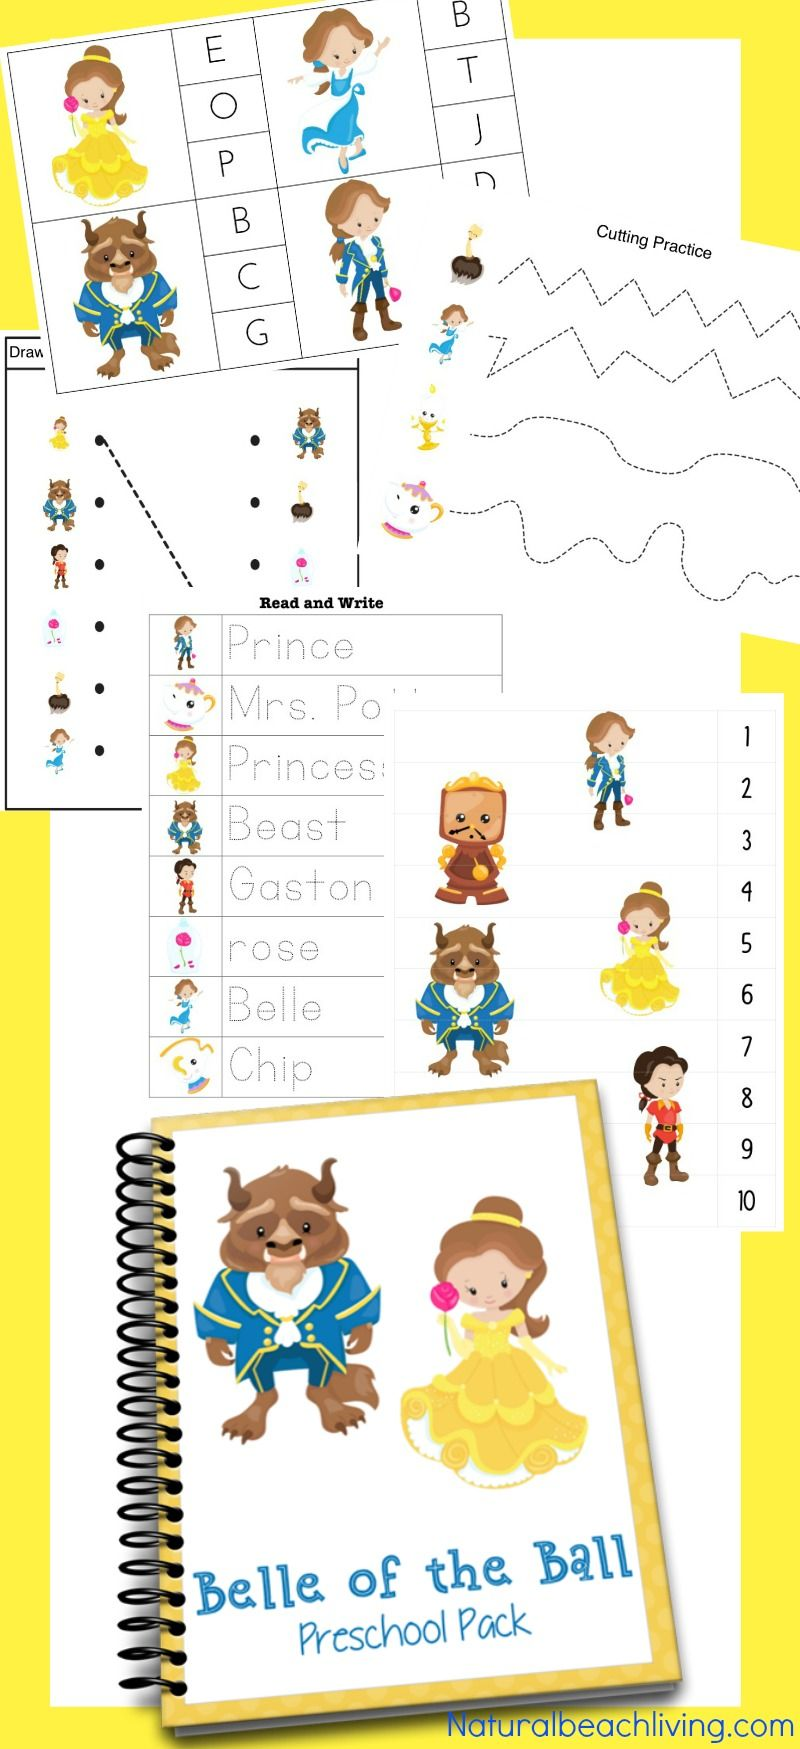 Cub Scout Belt Loop Requirements Worksheets Excel The Perfect Beauty And The Beast Printables For Preschool  Maths Worksheet Printable Pdf with Worksheets For Class 2 Word The Perfect Beauty And The Beast Printables For Preschool  Kindergarten Cask Of Amontillado Worksheets Pdf